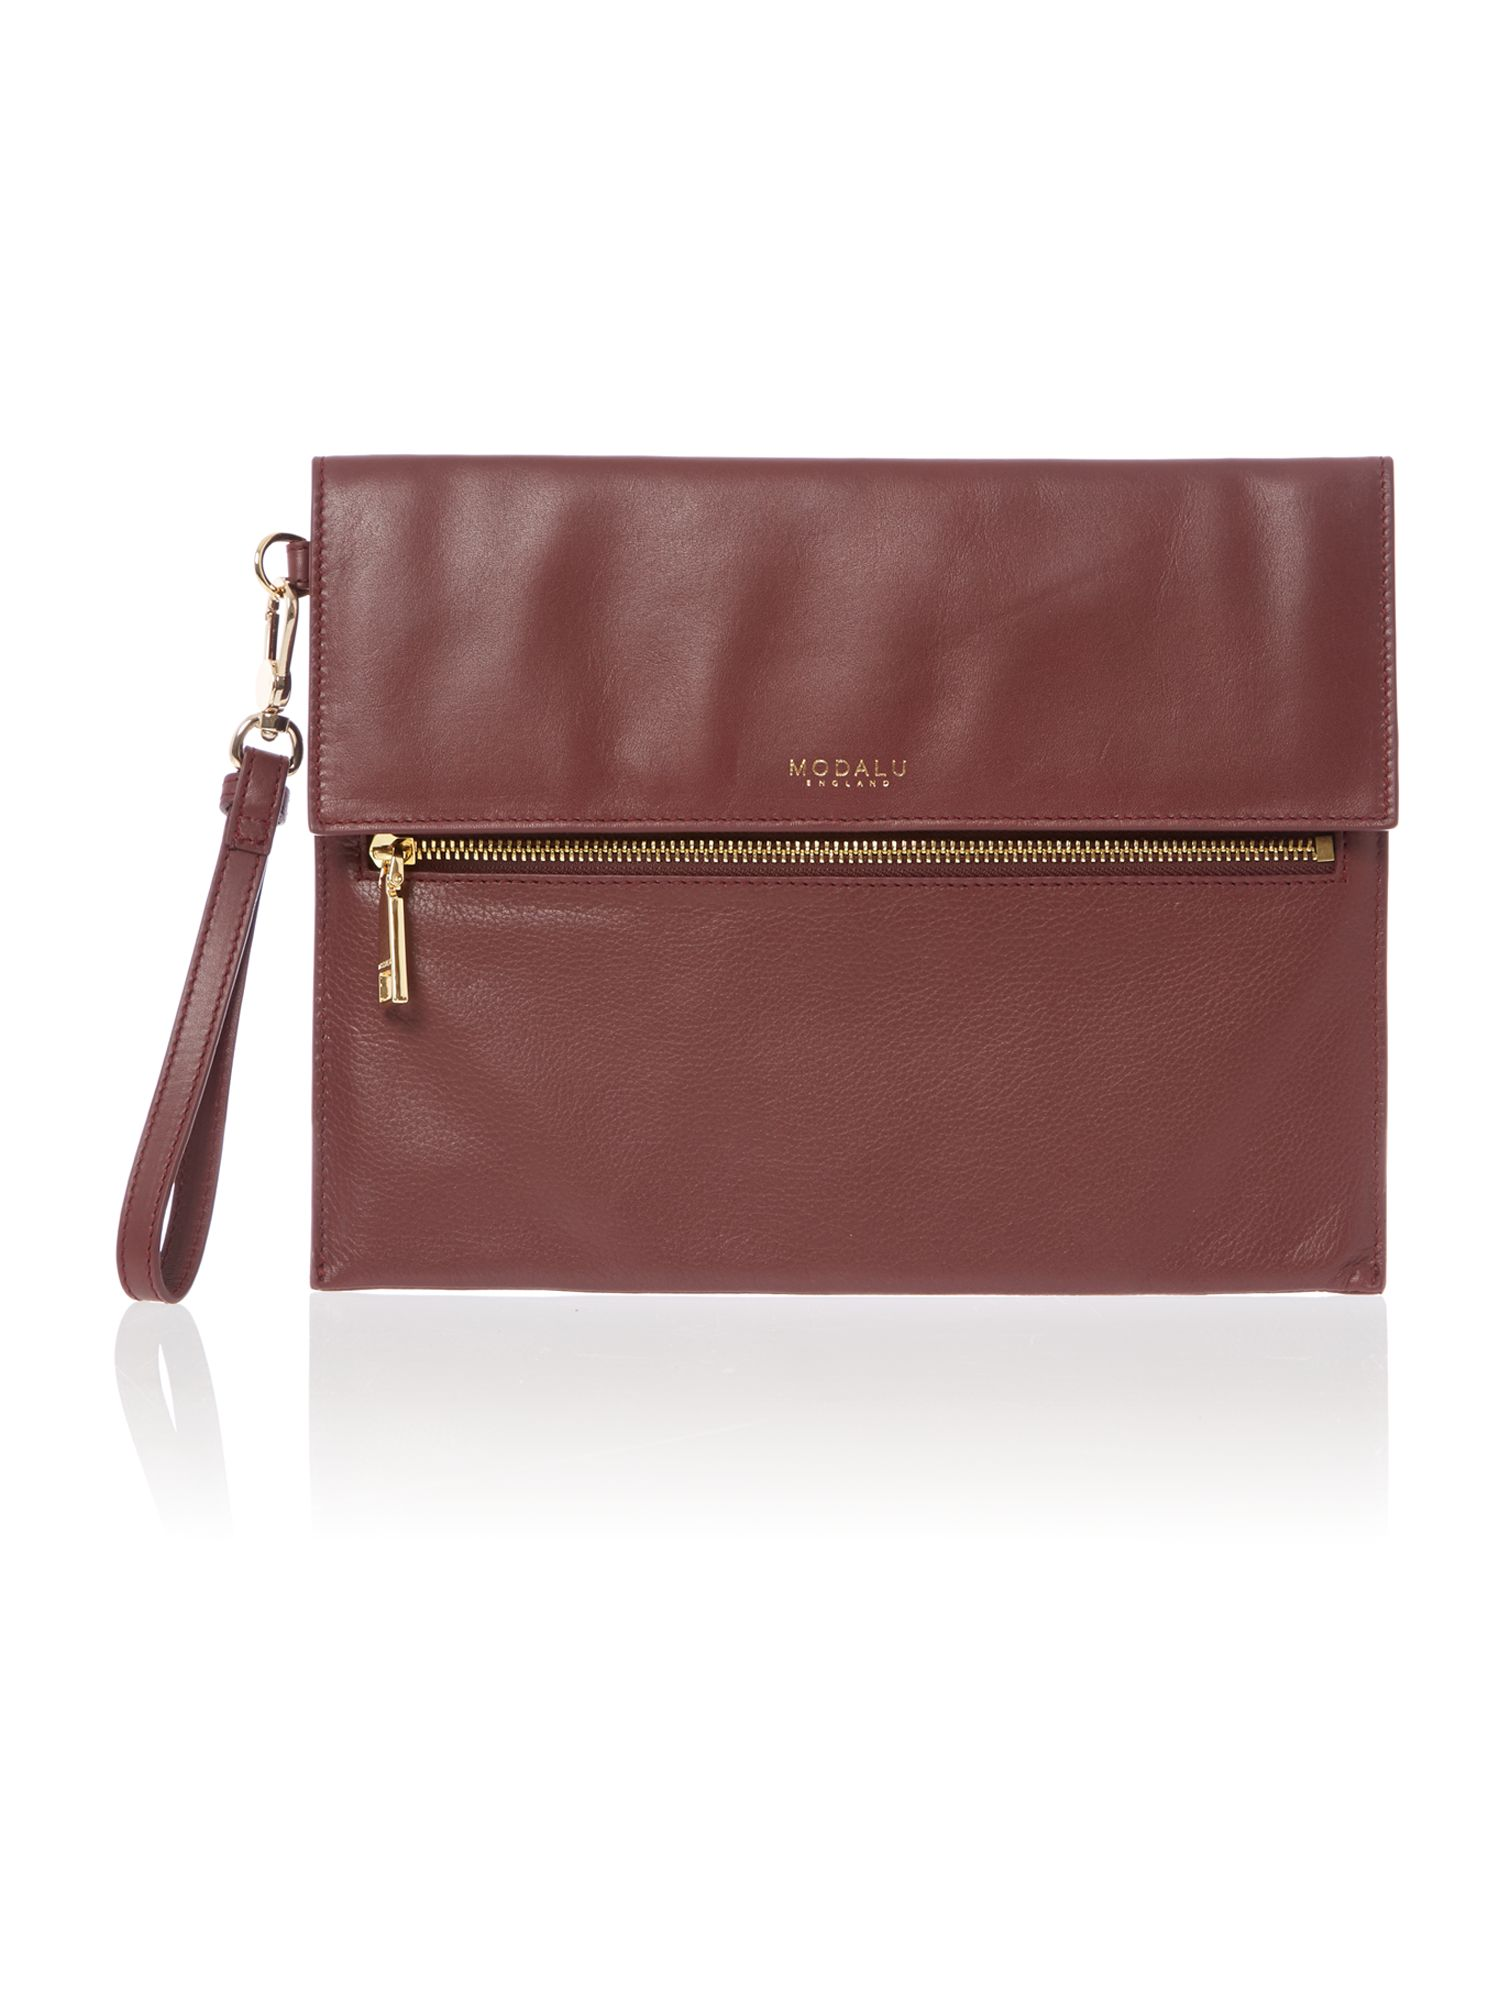 Erin burgundy clutch bag